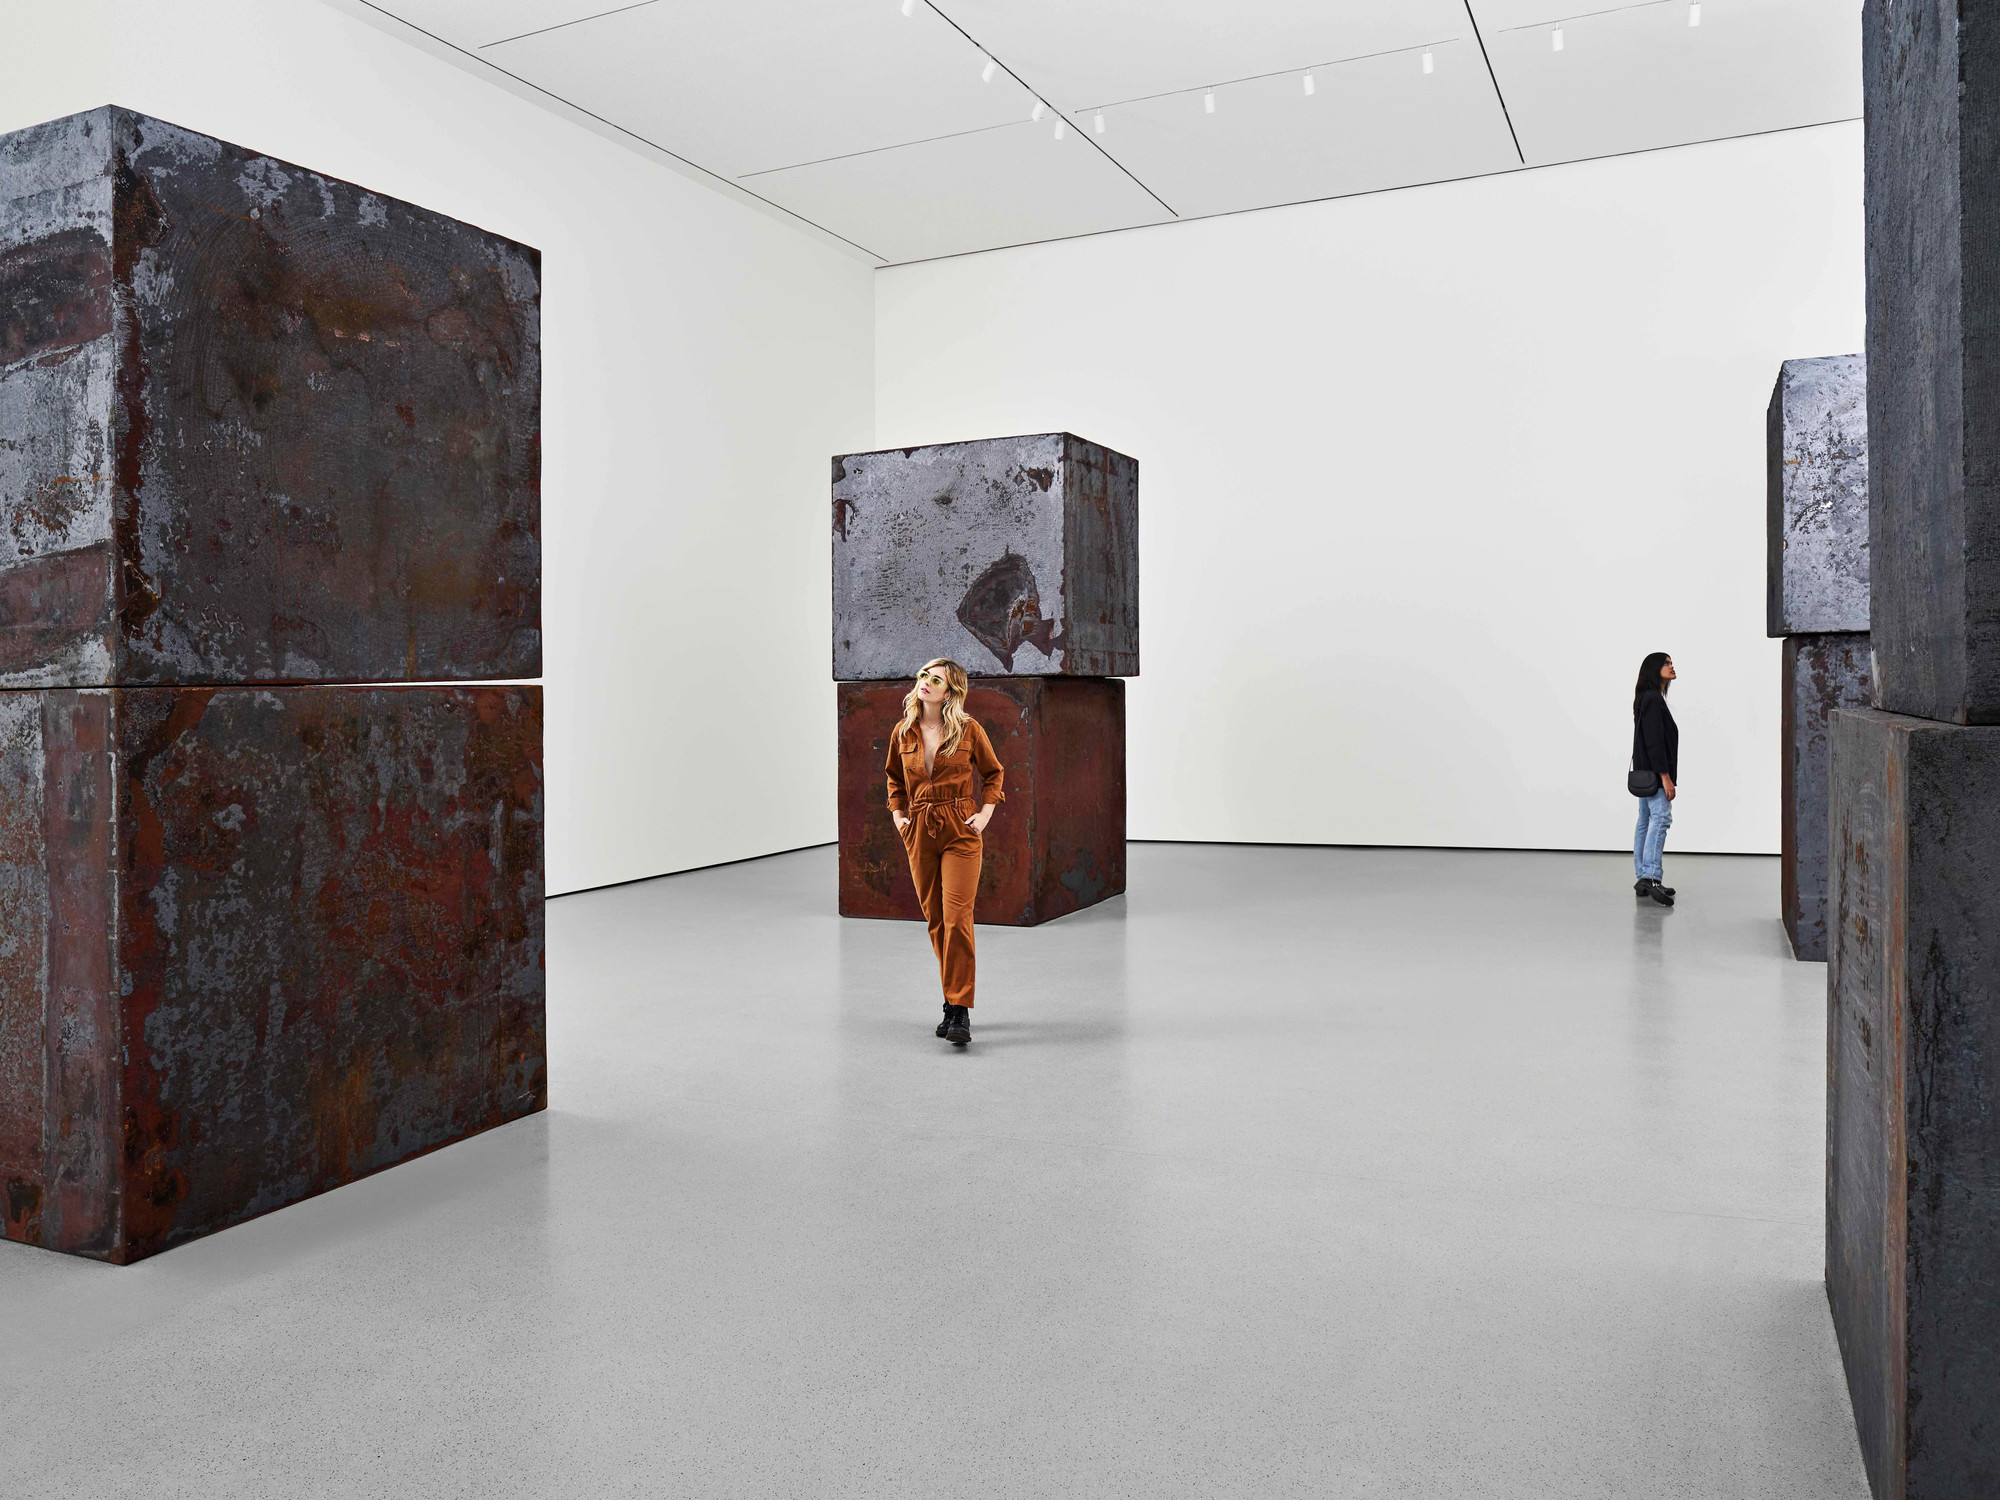 A view of the second-floor collection galleries. Shown: Richard Serra. Equal. 2015. Forged weatherproof steel. Gift of Sidney and Harriet Janis (by exchange), Enid A. Haupt Fund, and Gift of William B. Jaffe and Evelyn A. J. Hall (by exchange). © 2019 Richard Serra/Artists Rights Society (ARS), New York